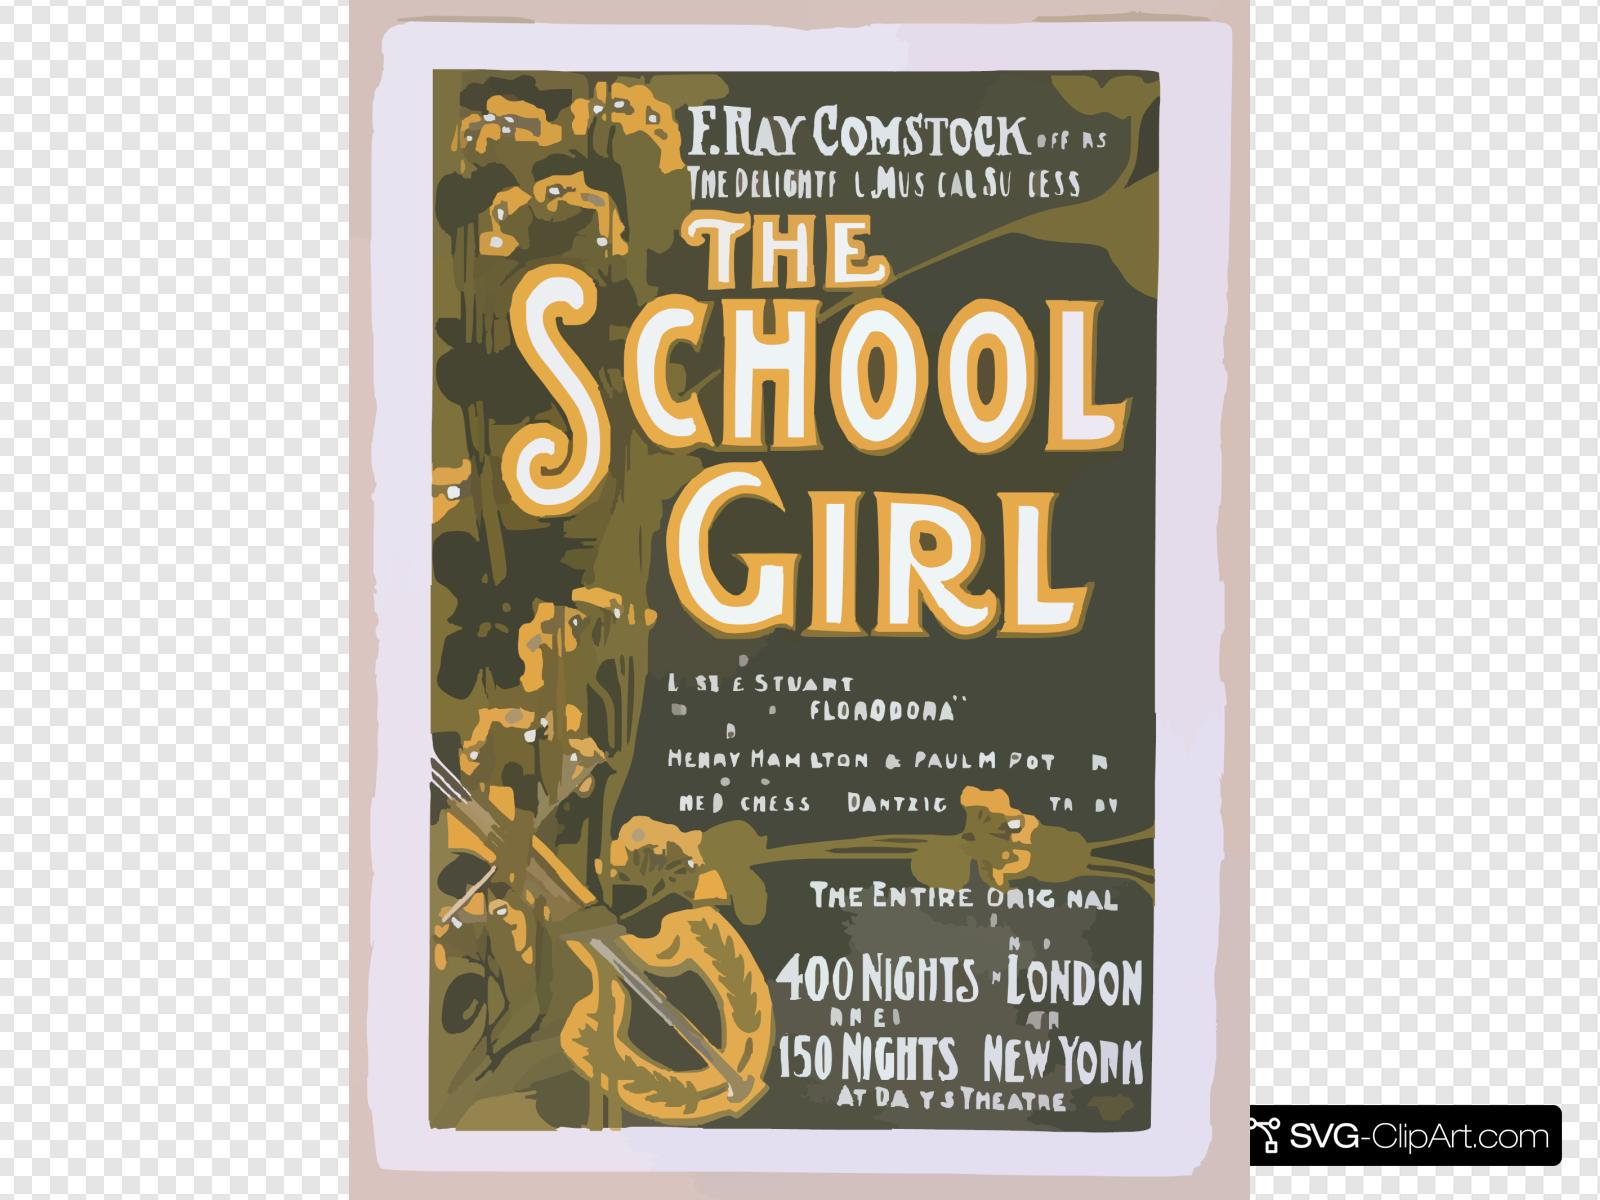 F. Ray Comstock Offers The Delightful Musical Success, The School Girl Music By Leslie Stuart, Composer Of  Florodora  ; Book By Henry Hamilton, Author Of  The Duchess Of Dantzig  & Paul M. Potter, Author Of  Trilby.